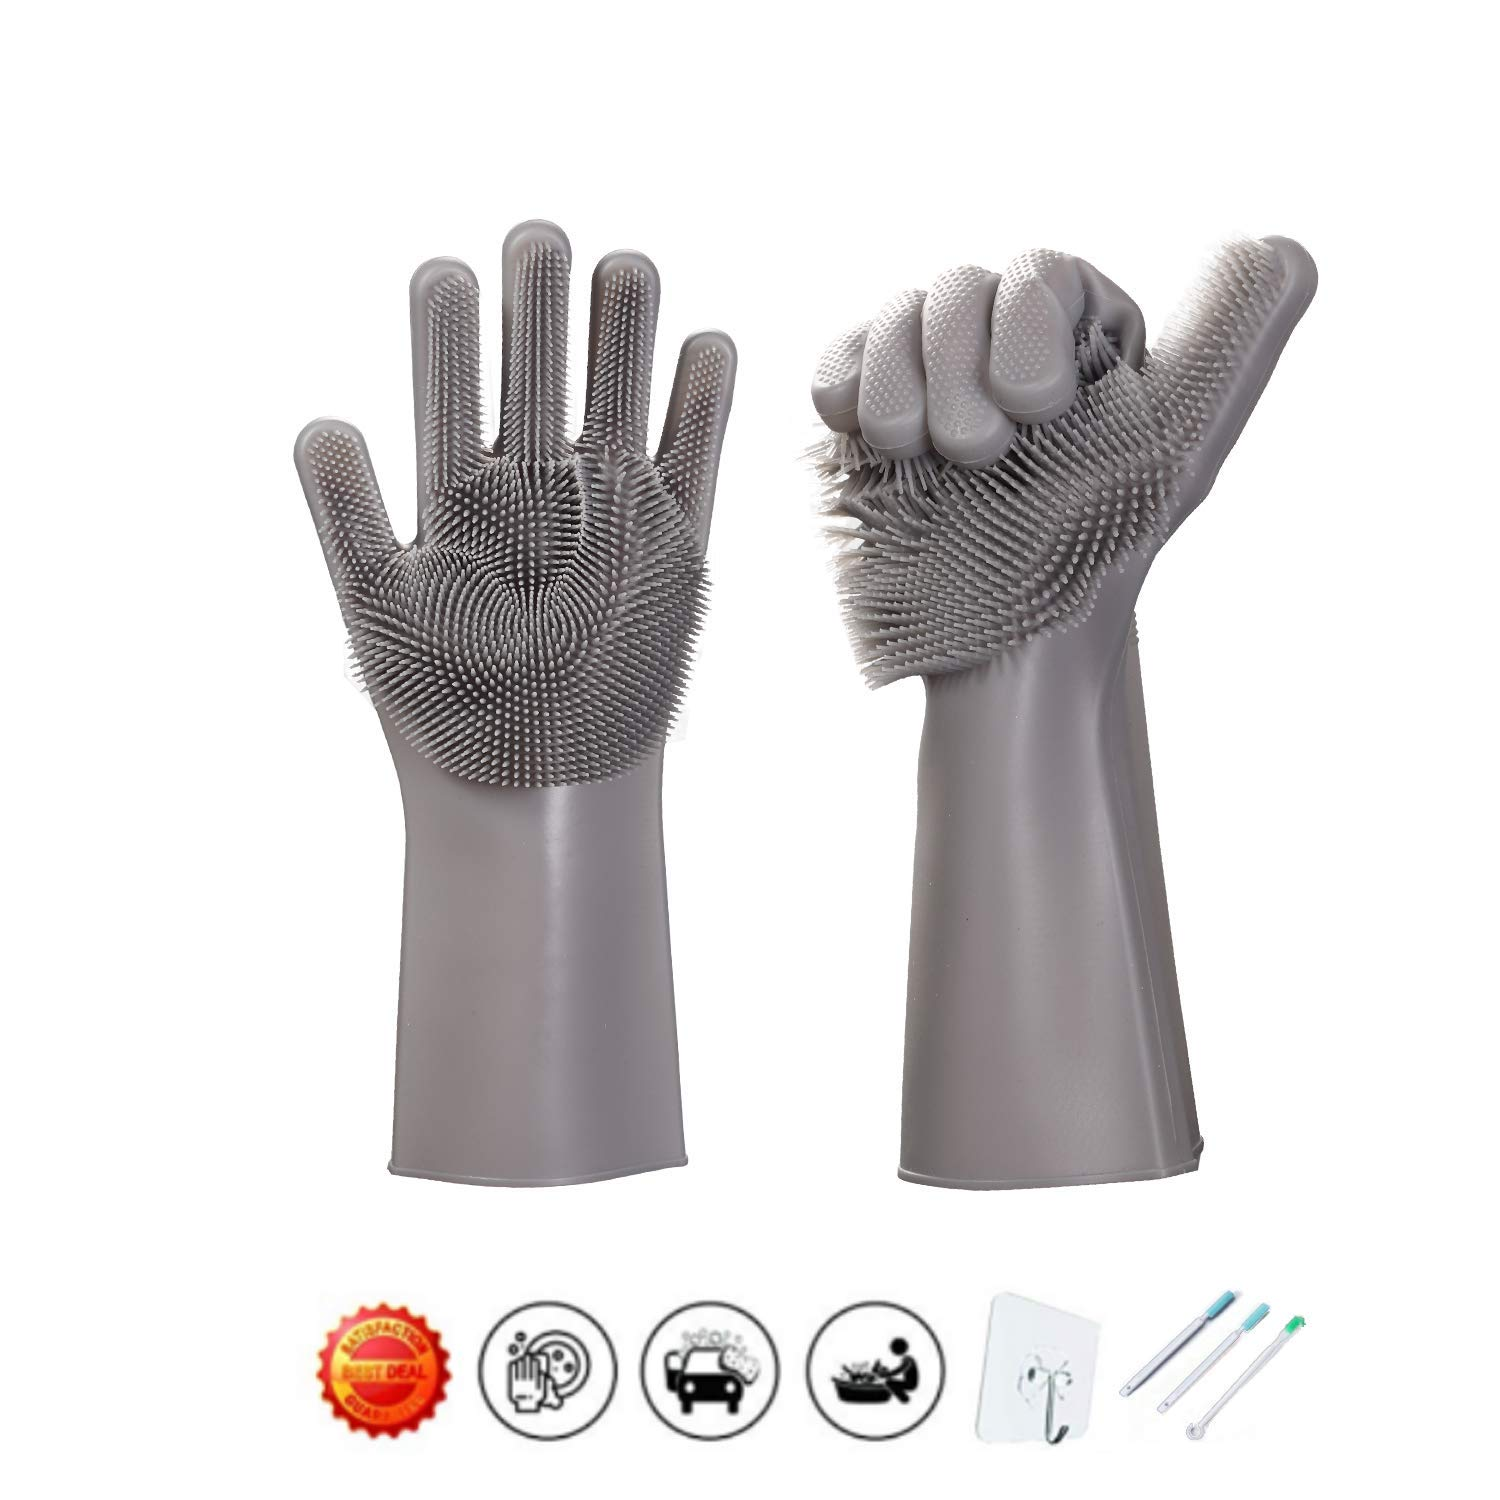 Magic Saksak Scrubber Gloves - 1 Piar Scrubbing Gloves - Reusable Silicone Dishwashing Gloves with Brush Scrub Gloves - Cleaning Gloves For Kitchen, Bathroom, Car, Pet and More(Gray)